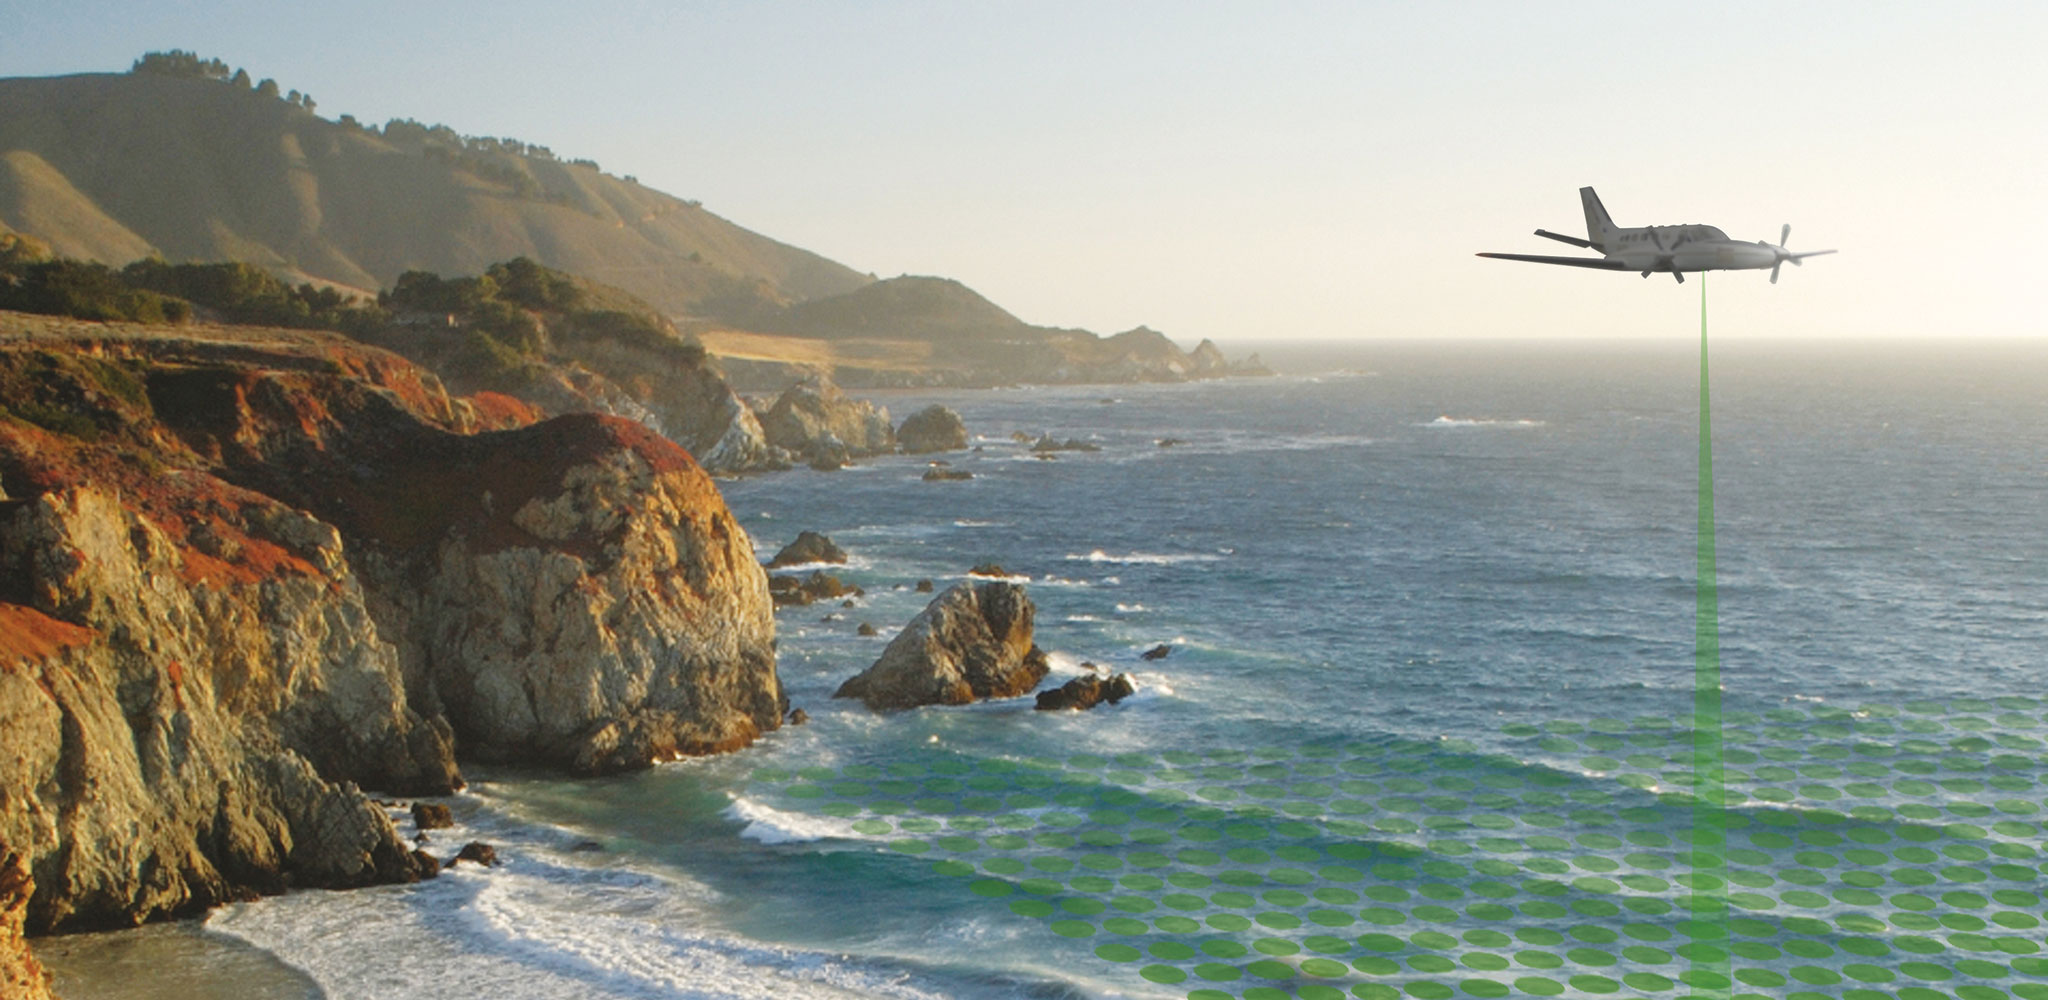 An airplane collects offshore bathymetry data